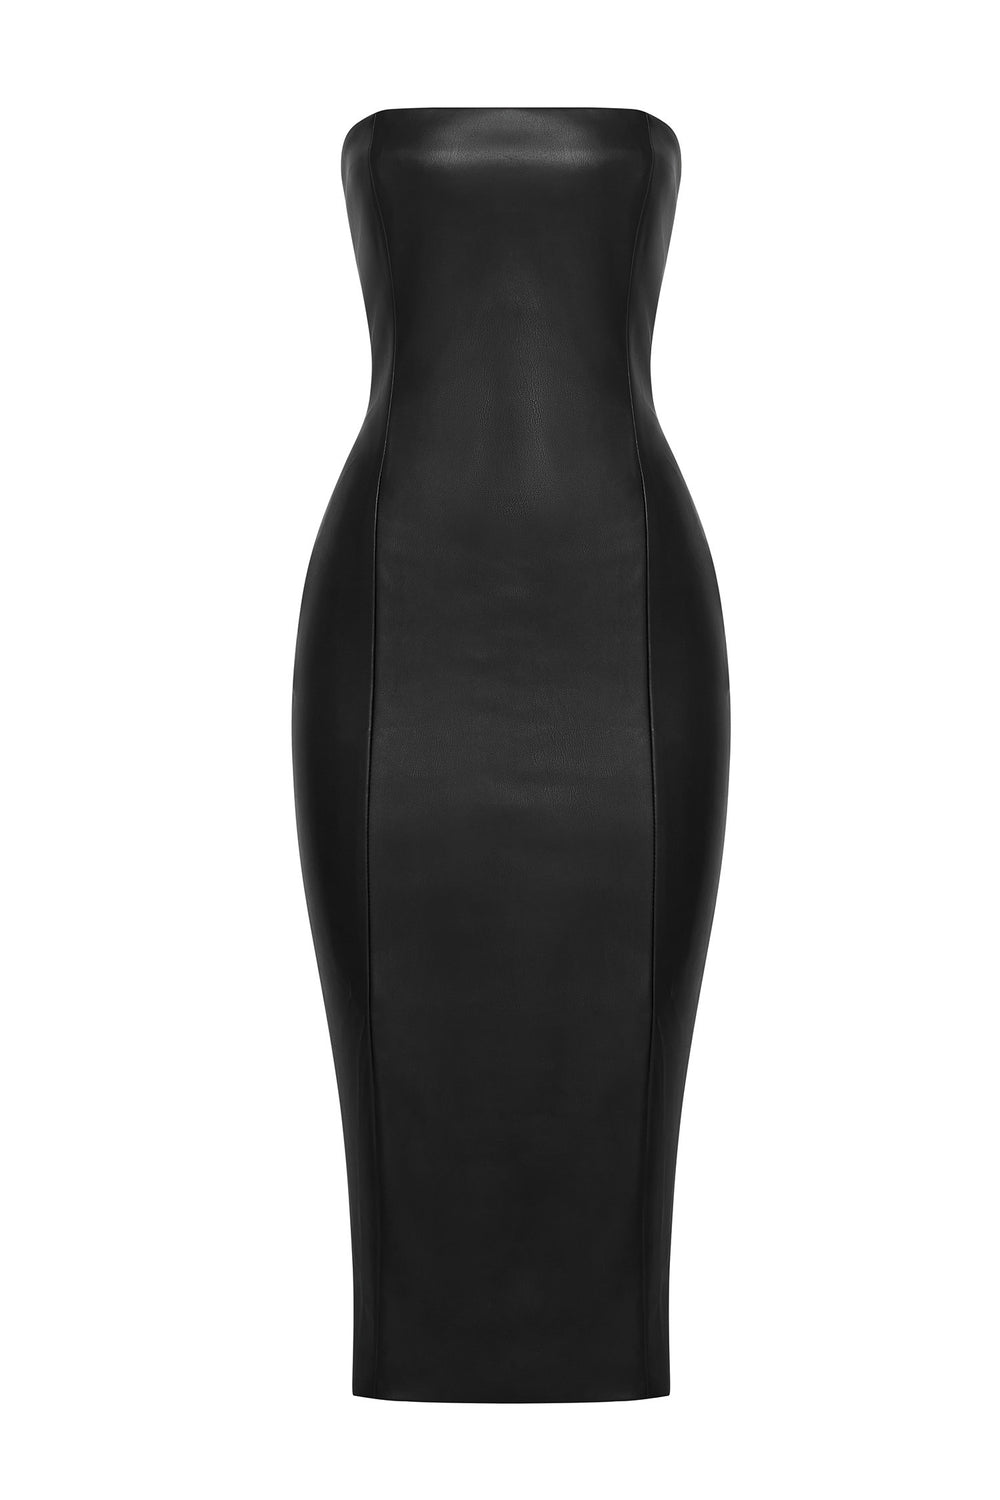 Pamela Strapless Faux Leather Dress - Black